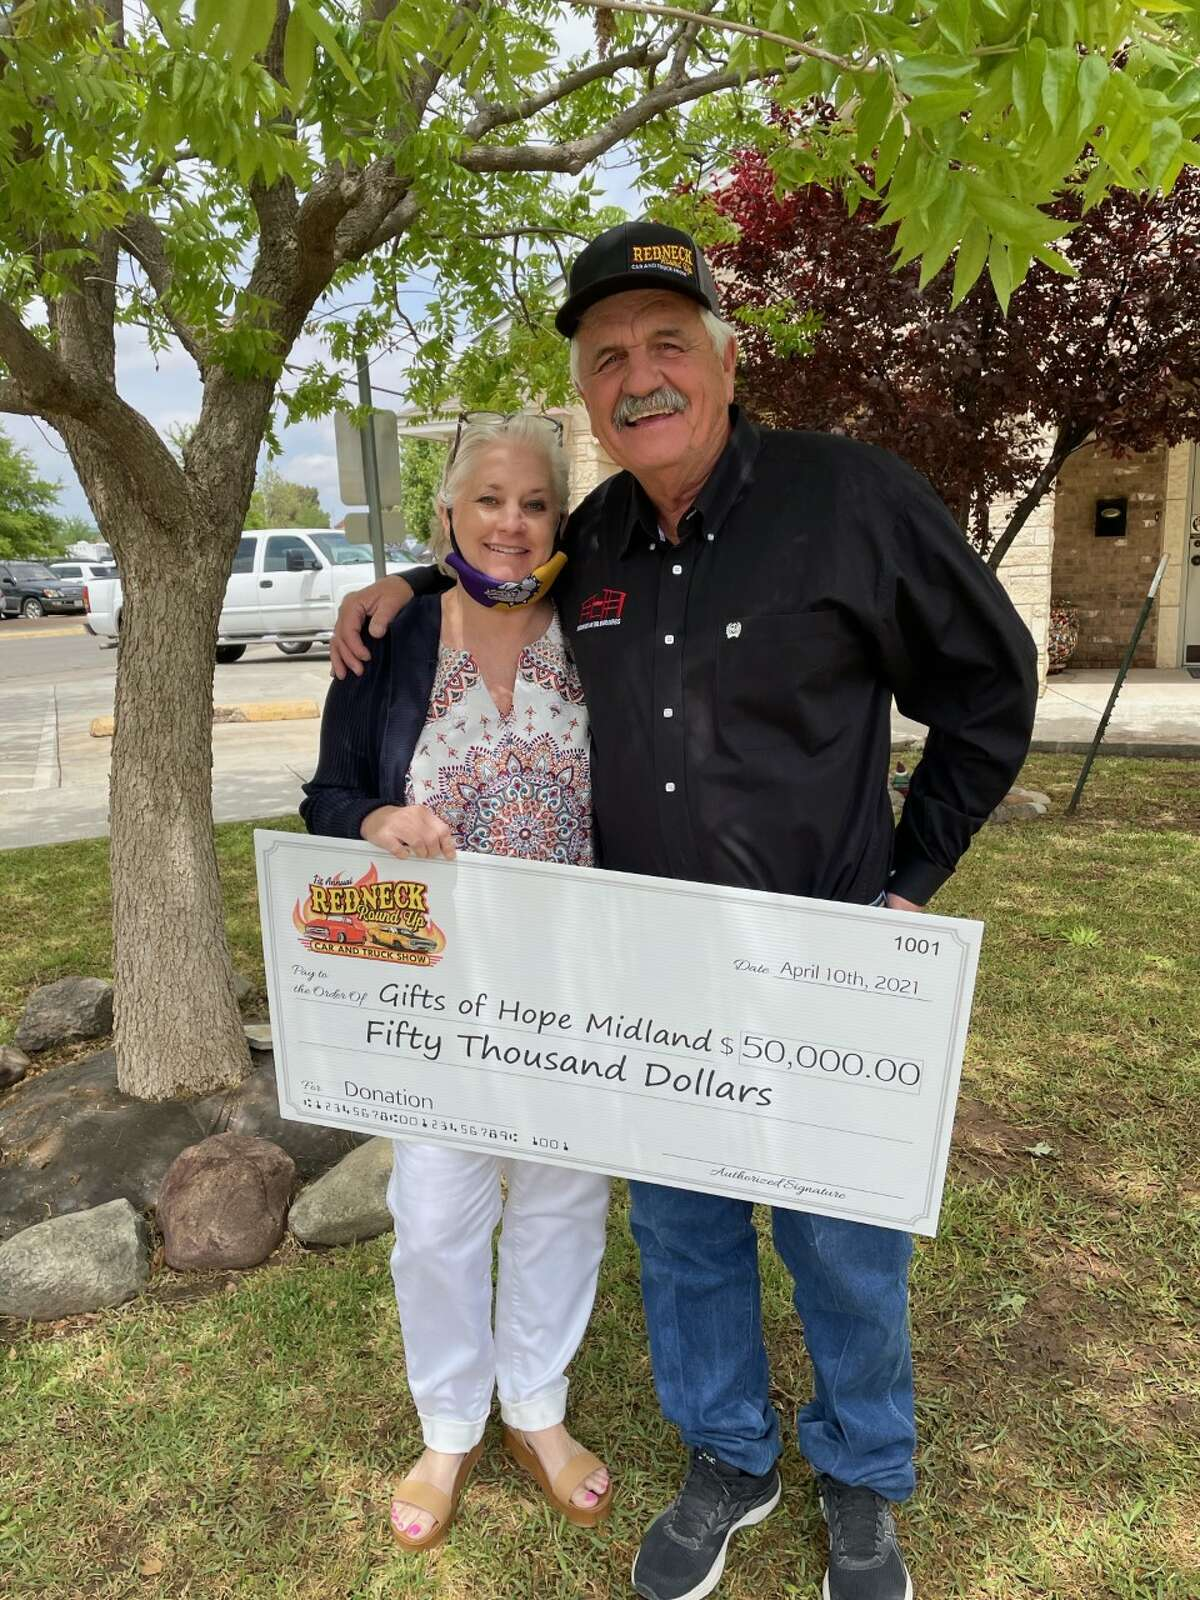 A $50,ooo donation check was presented to Gifts of Hope nonprofit Friday at the Hope House. The check was presented by Clarence Sauer, owner of Redneck Metal Buildings and Construction. Sauer created the Redneck Roundup Car and Truck Show that happened on April 10.